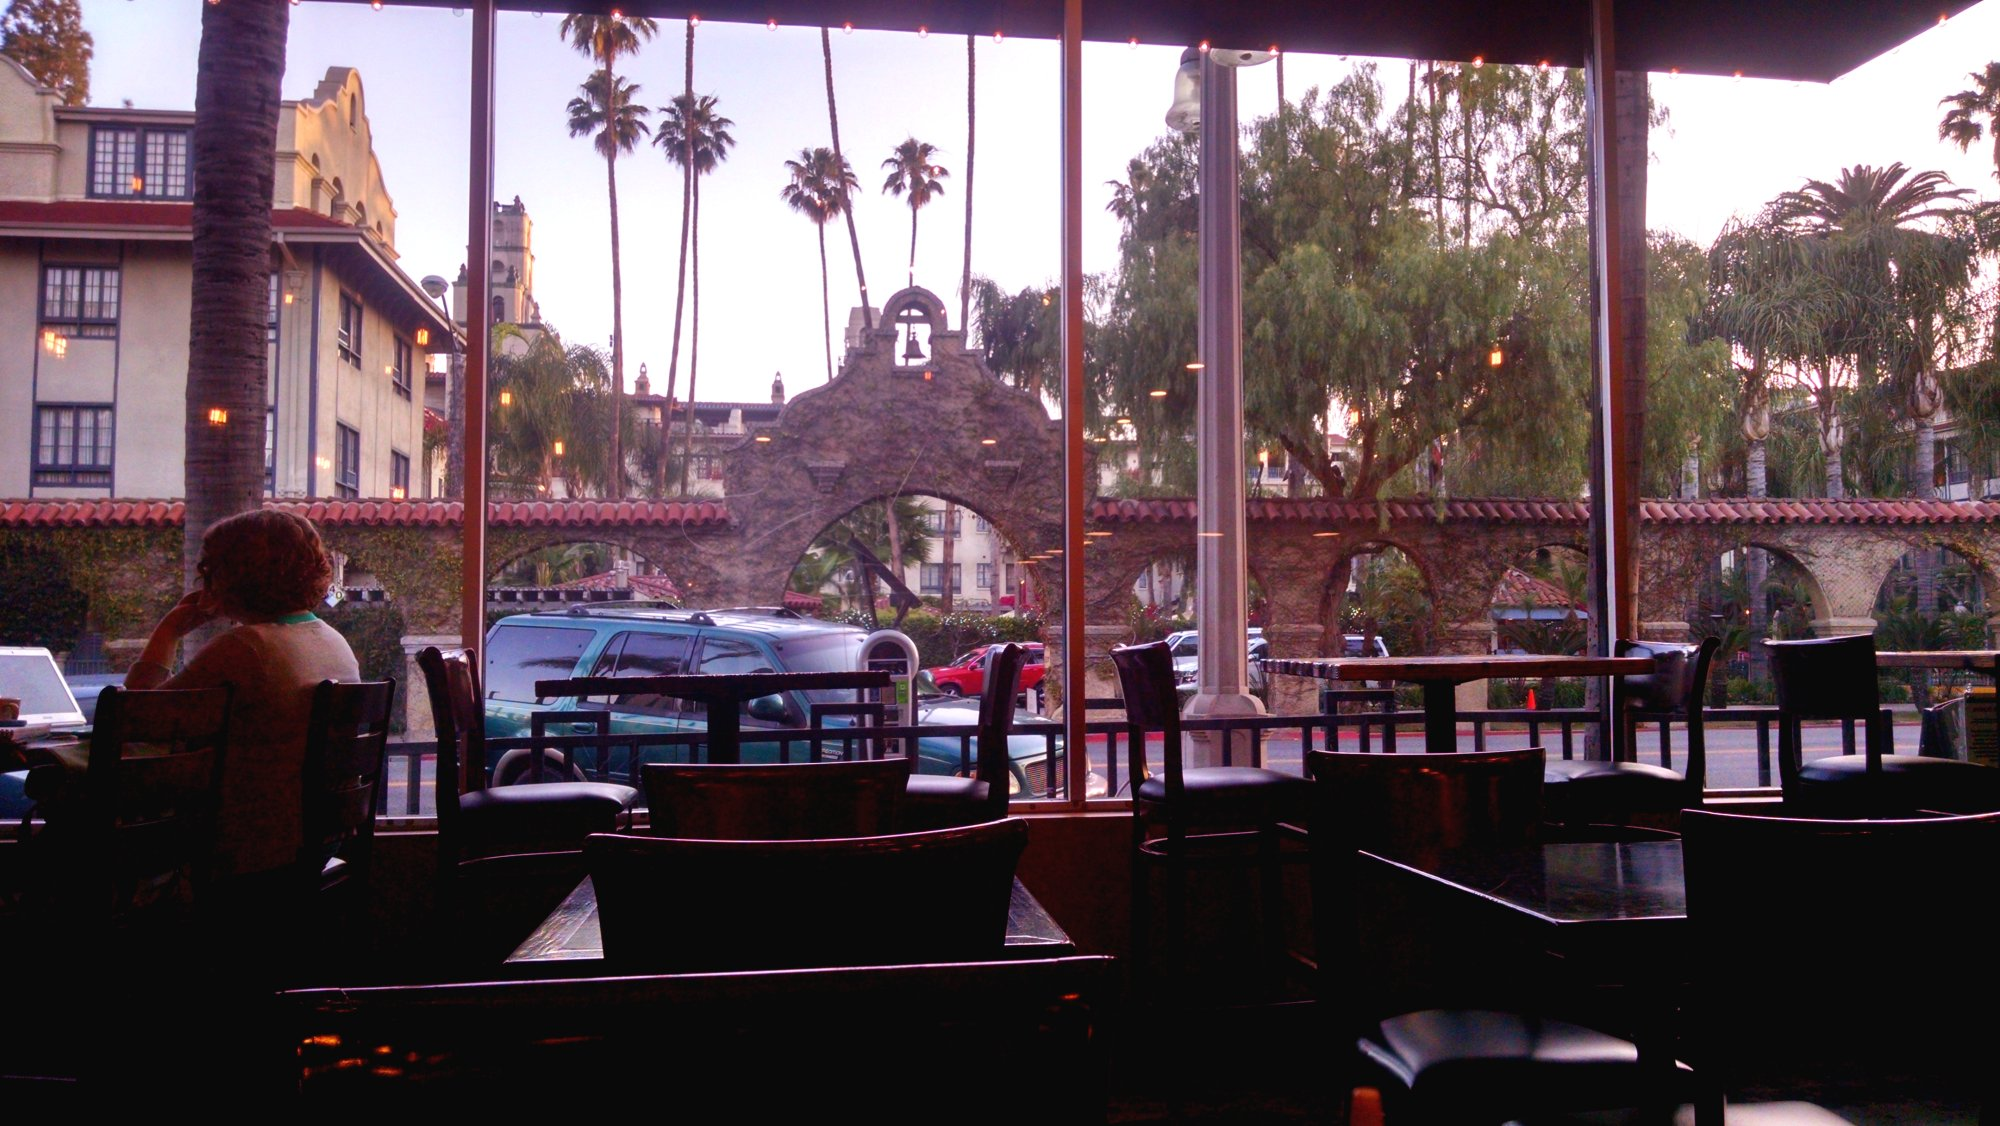 Mission Inn Hotel view from Molino's coffee in Riverside, CA